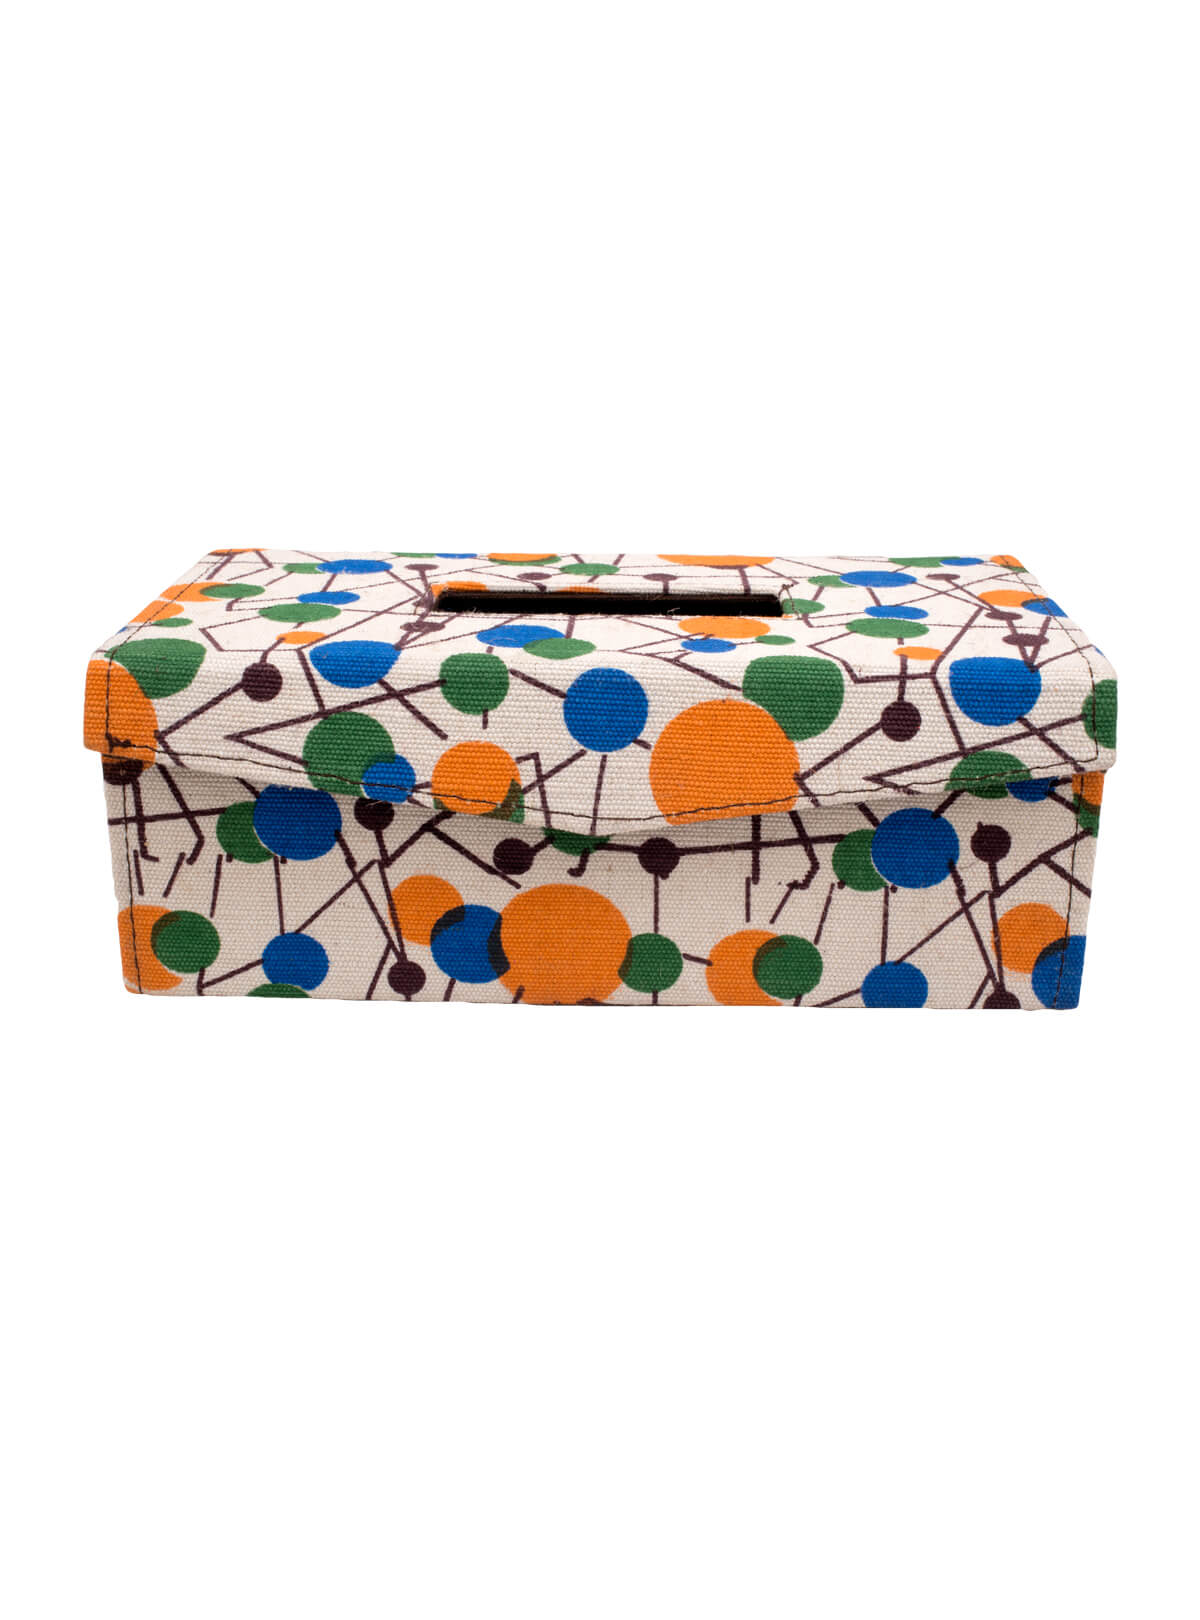 Multi-color Jute Leather Tissue Box